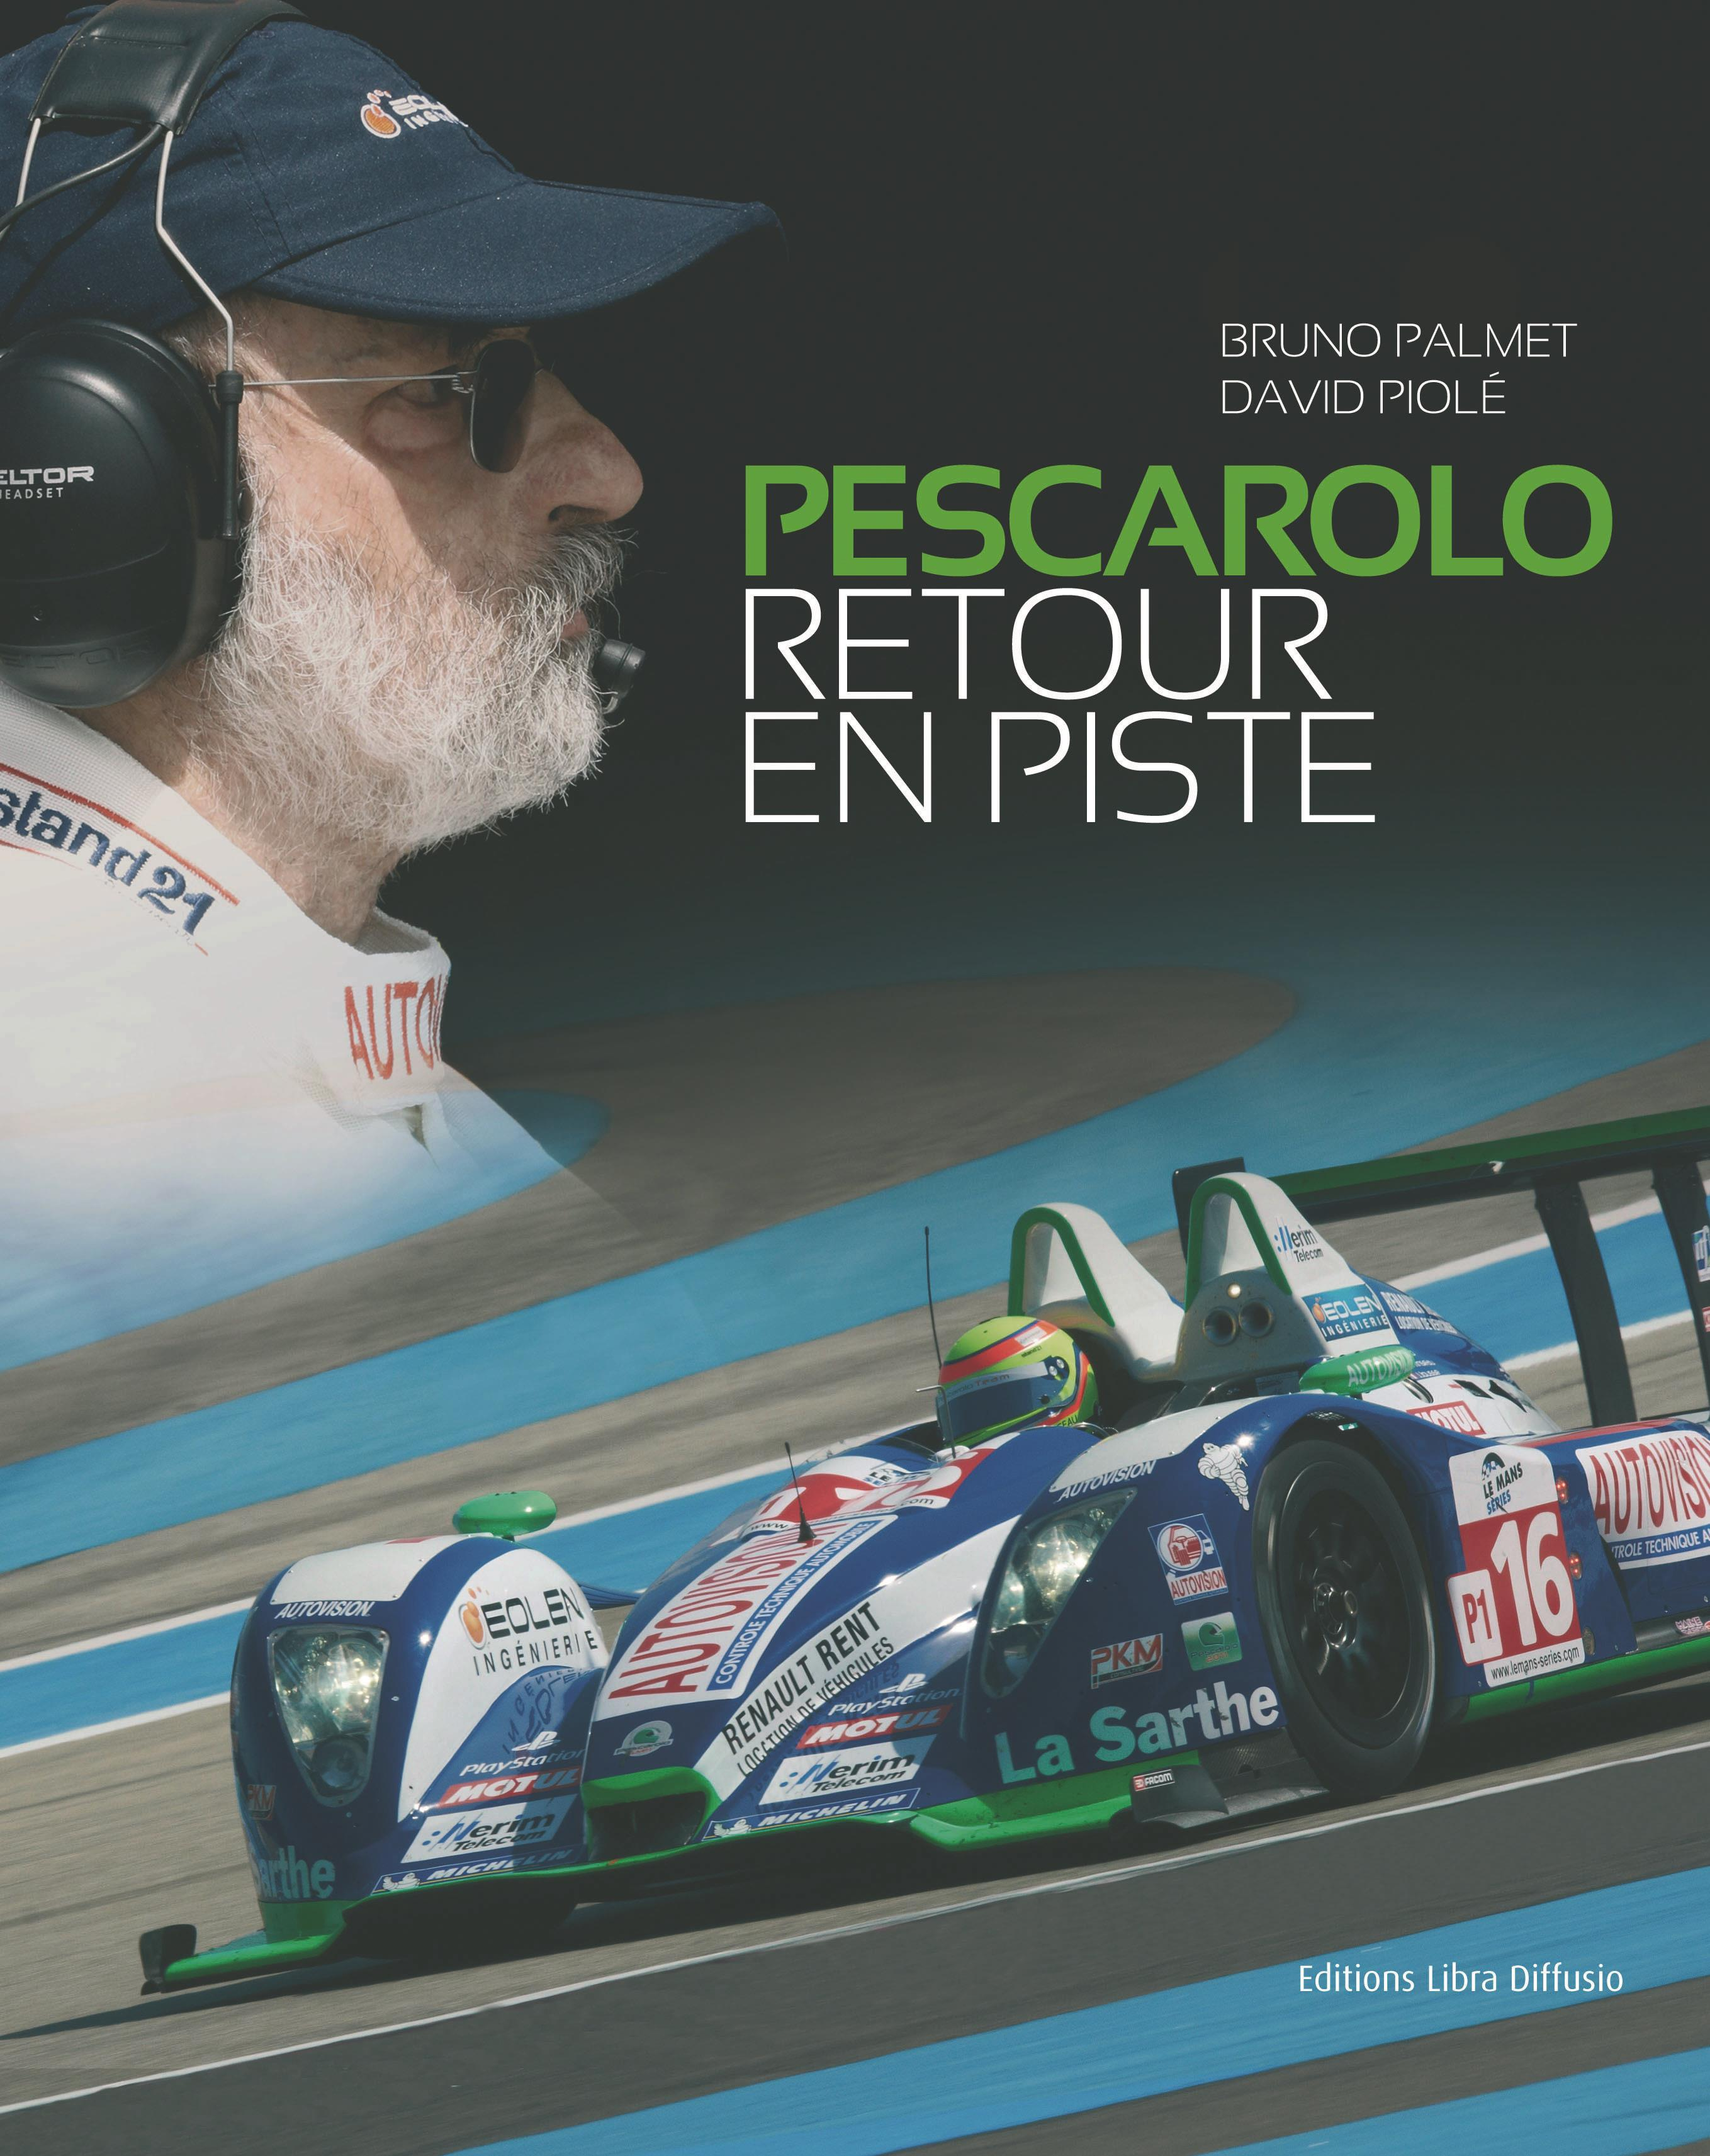 58a9108efee ... William Pescarolo est un pilote automobile français